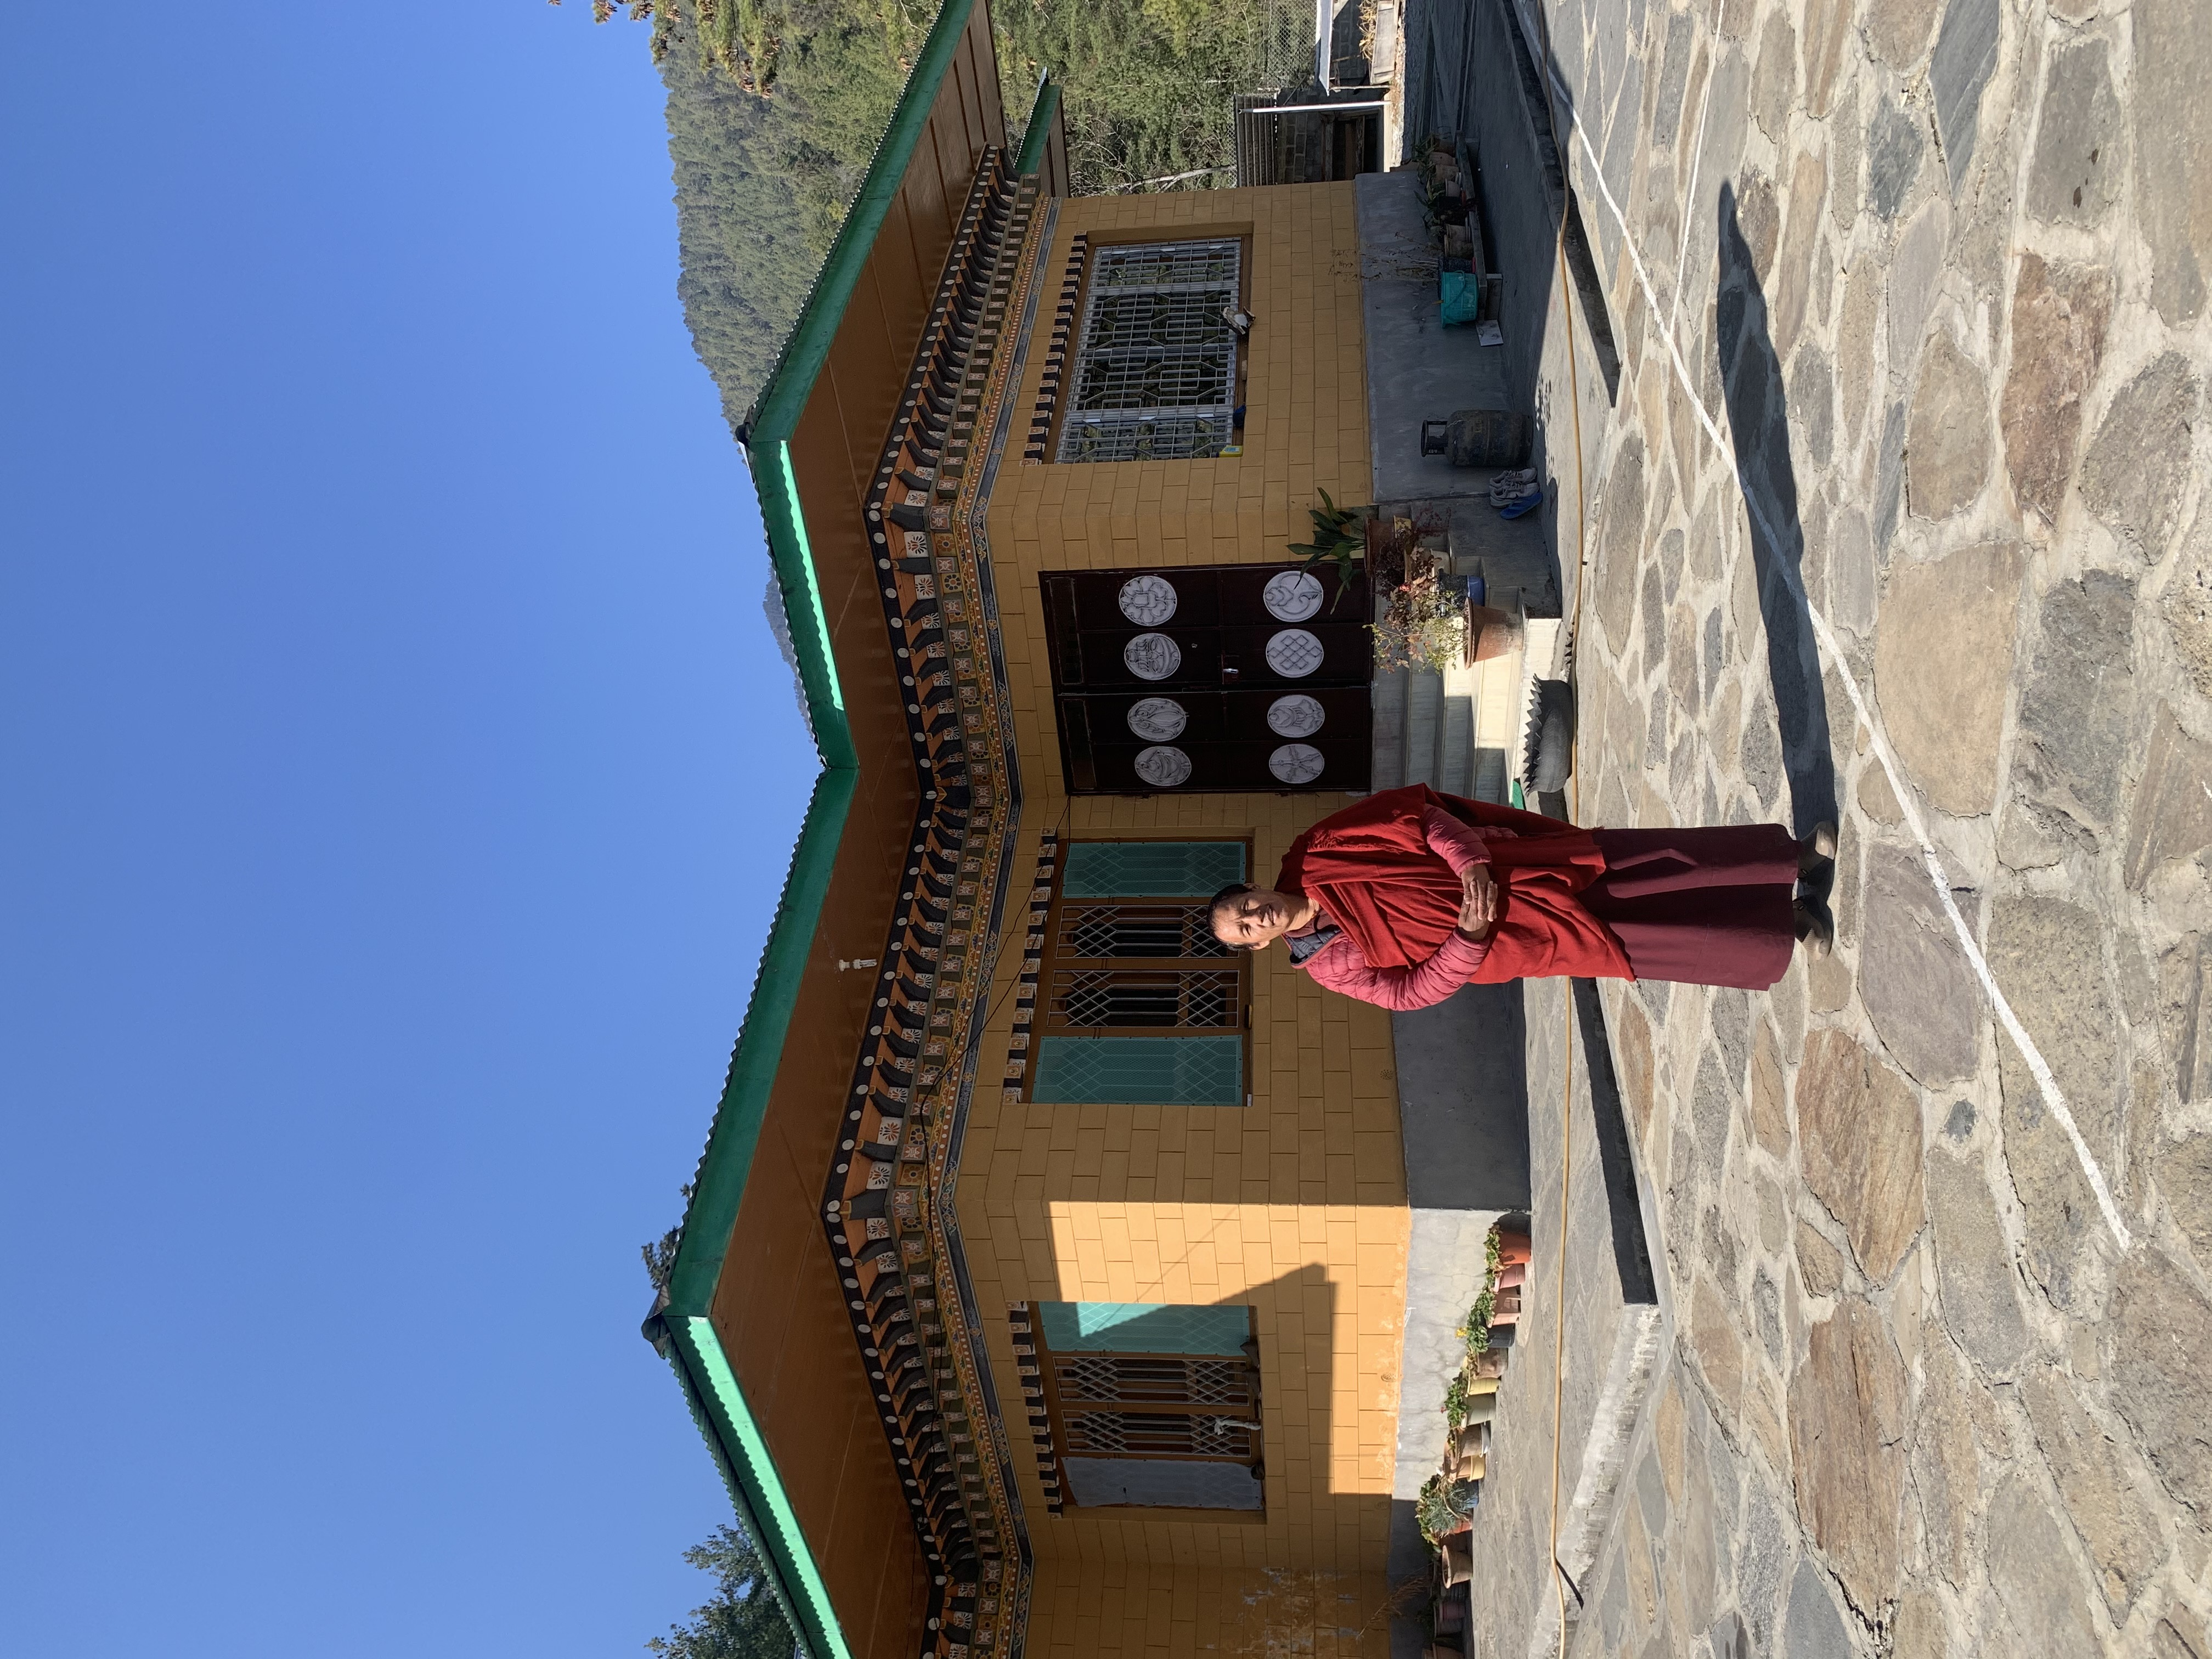 Khenpo Sangay Wangdi Rinpoche in front of his retreat house